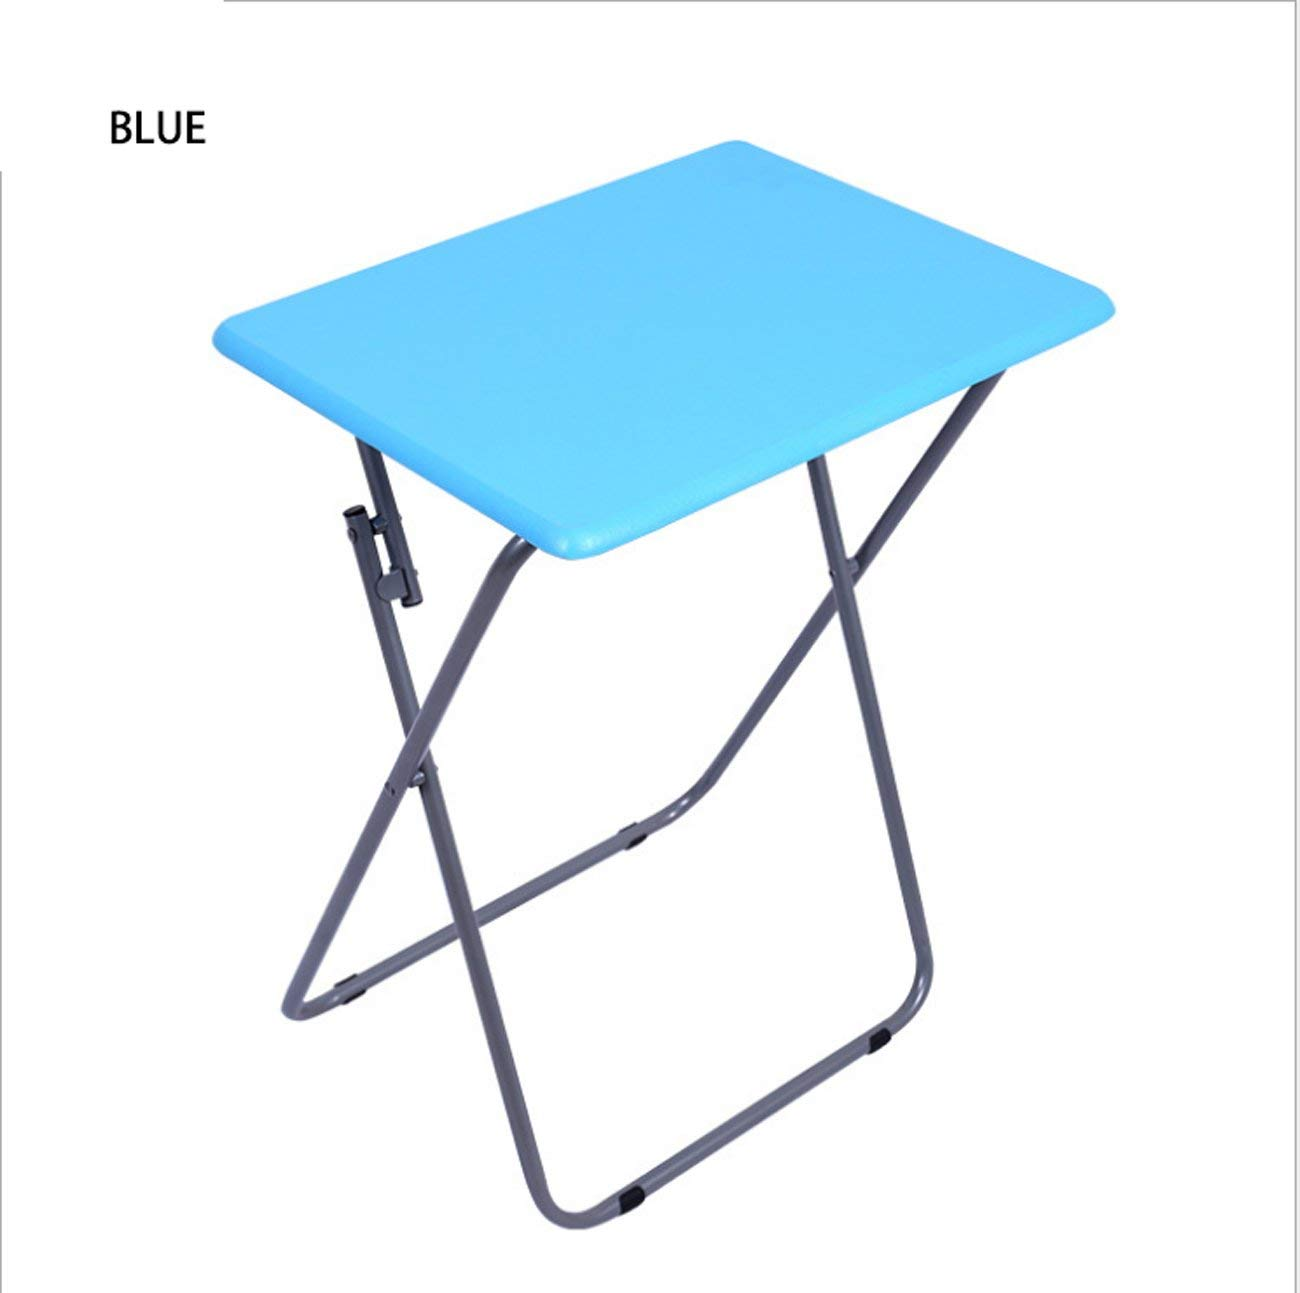 Fishing bofumaoyi Portable Camping Tables with Aluminum Table Top,Ultralight Compact Folding Camping Aluminum Table with Carry Bag Beach Two Sizes,Fit Indoor and Outdoor Picnic BBQ